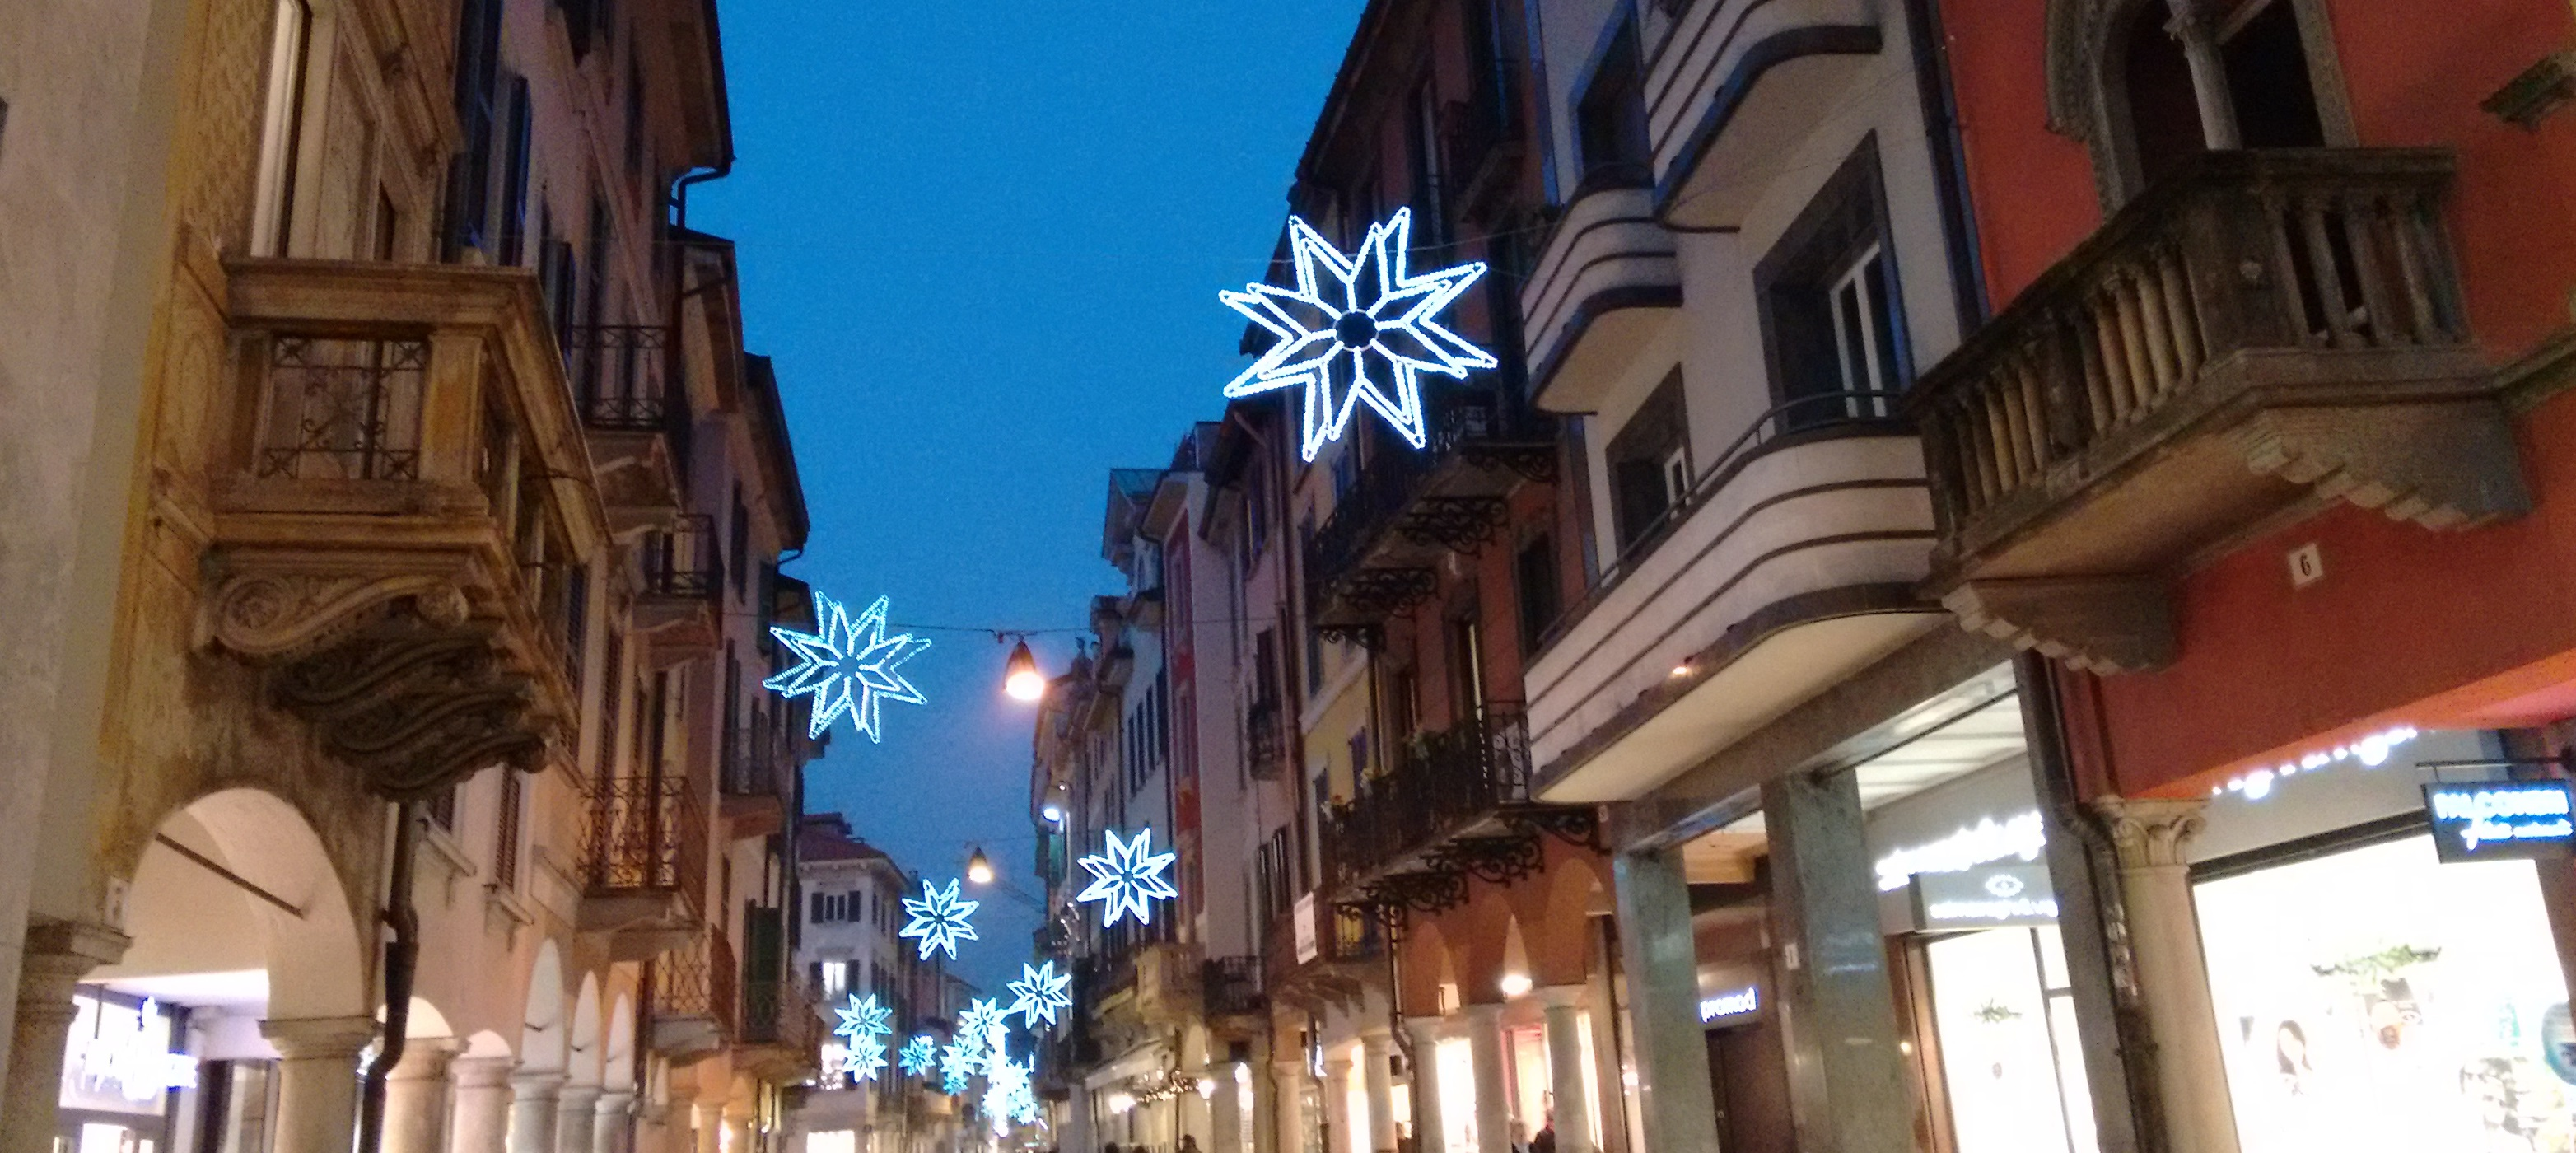 Natale 2015 Varese